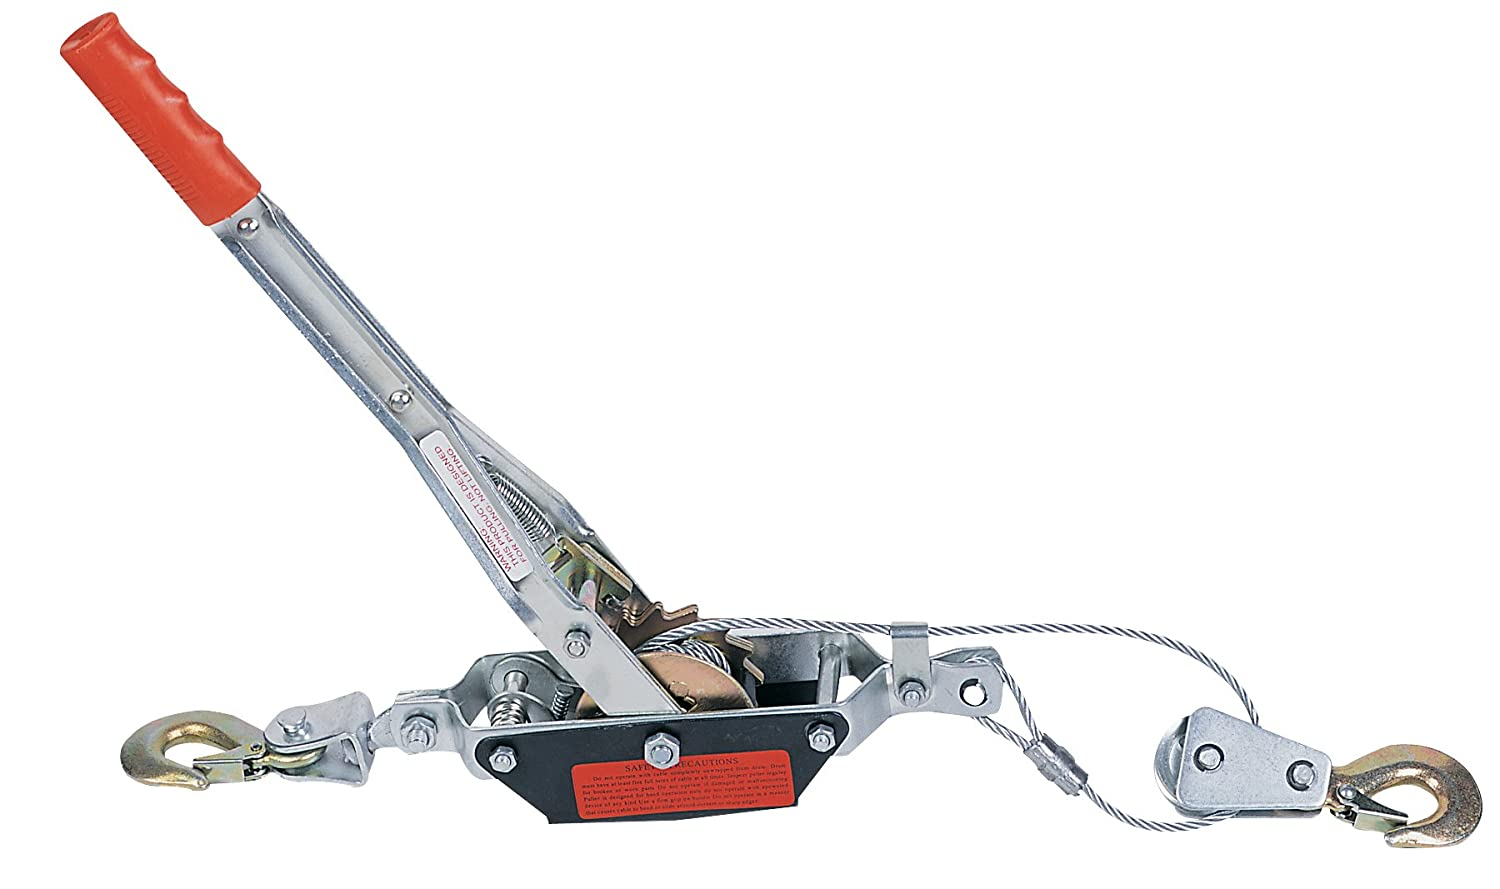 4400-Pound Tractor Capacity JLTC HP20D Hand Puller 10-Foot Cable